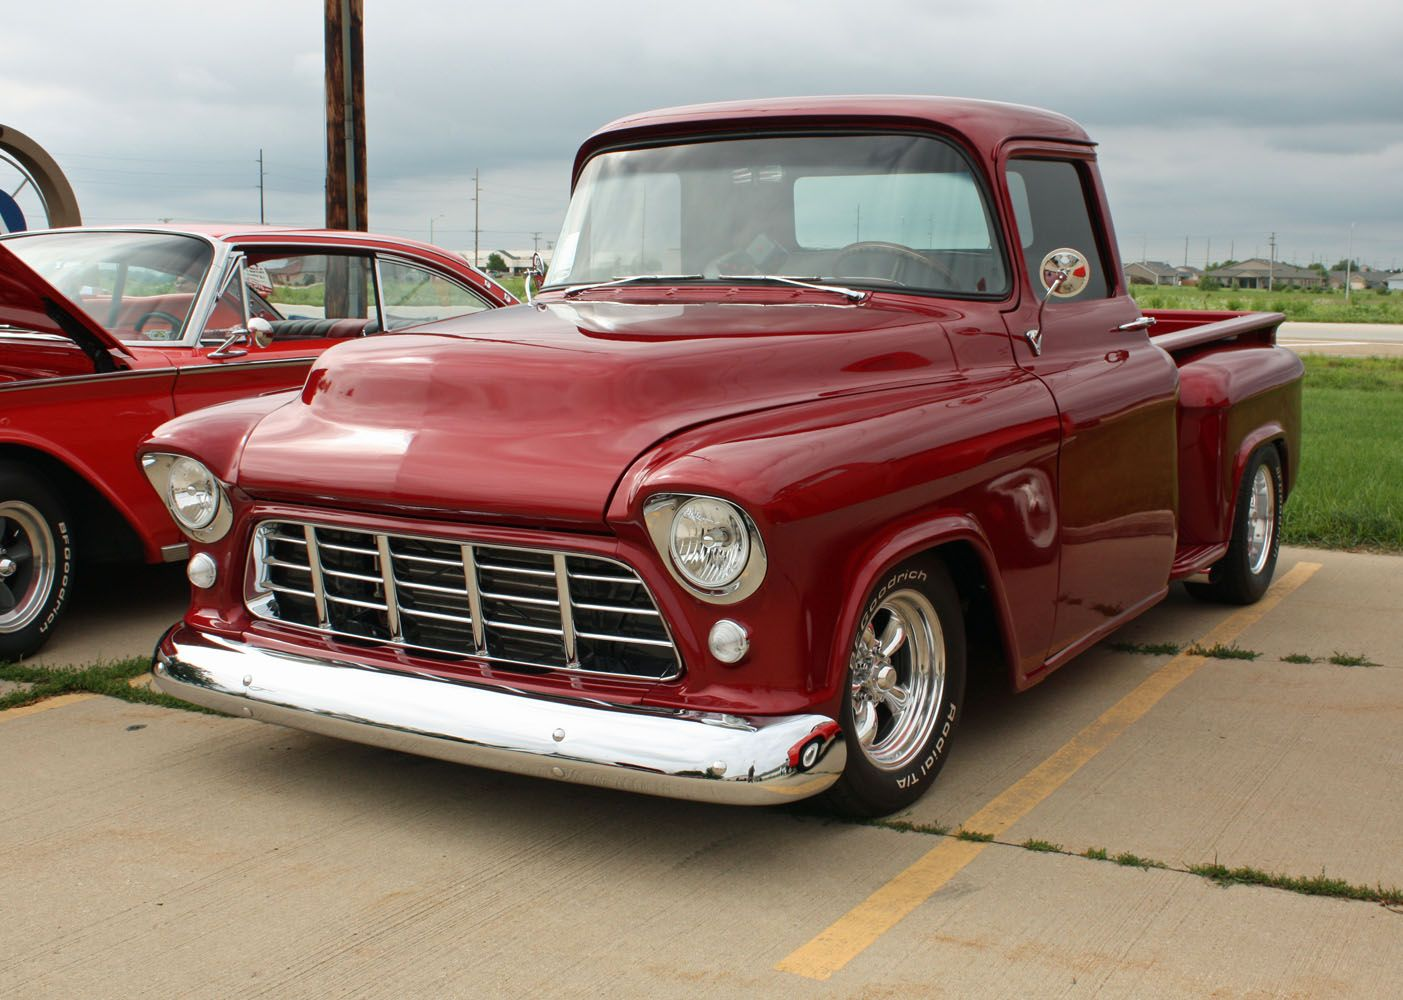 1955 chevrolet hot rod truck pictures to pin on pinterest - 1955 Chevy Pickup 1955 Second Series Chevy Gmc Pickup Truck